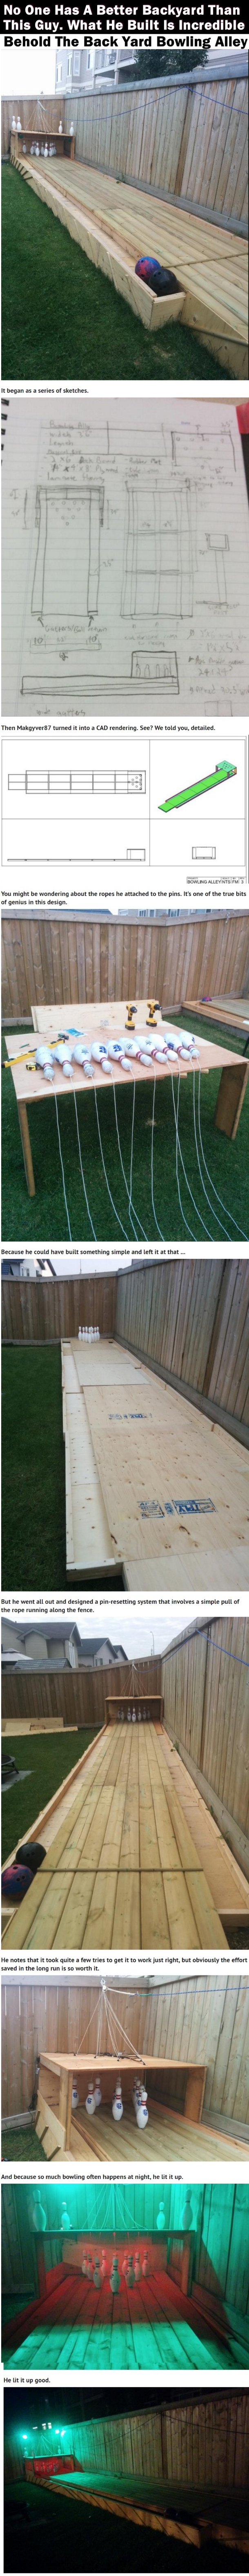 What This Guy Built In His Backyard Is Incredible All Of The Neighbors Are Jealous Of This Backyard Lap Pools Backyard The Incredibles